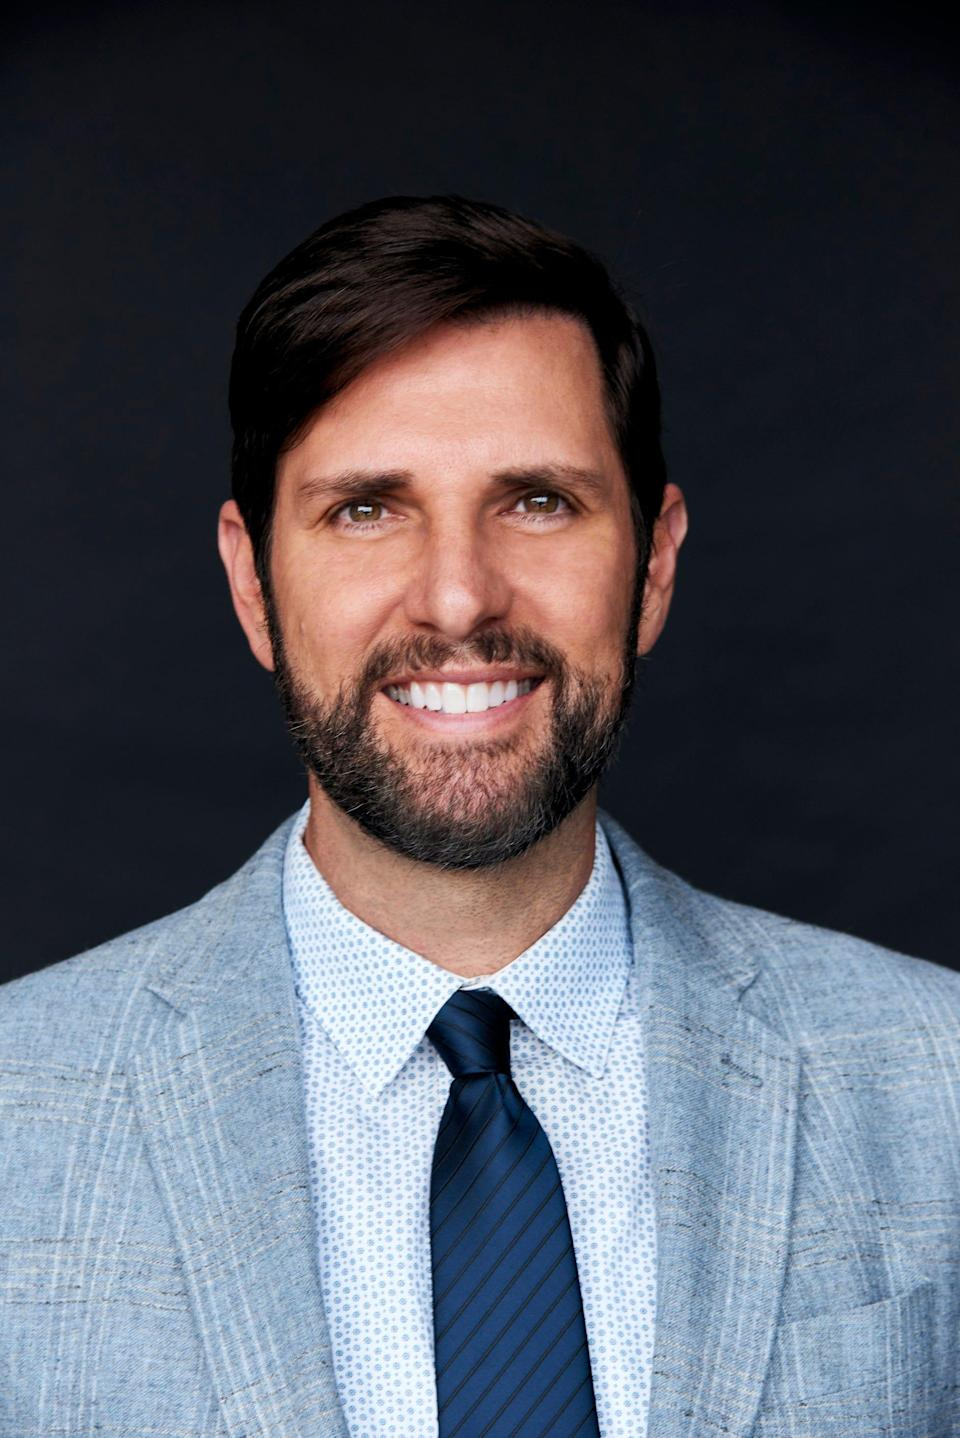 Damon Whiteside was named CEO of the Academy of Country Music on Dec. 9, 2019.